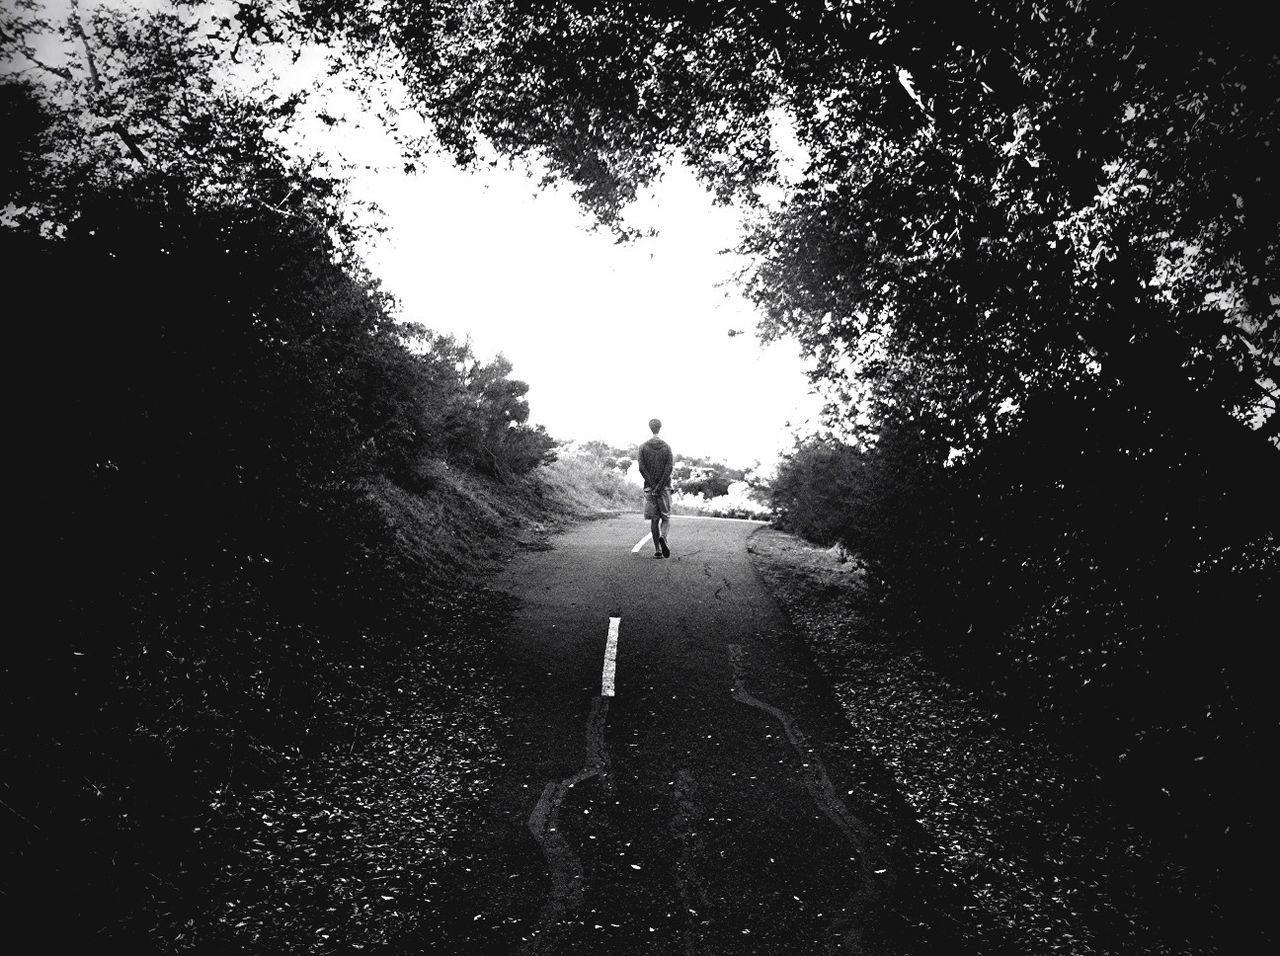 Rear View Of Man Walking On Country Road Against Sky